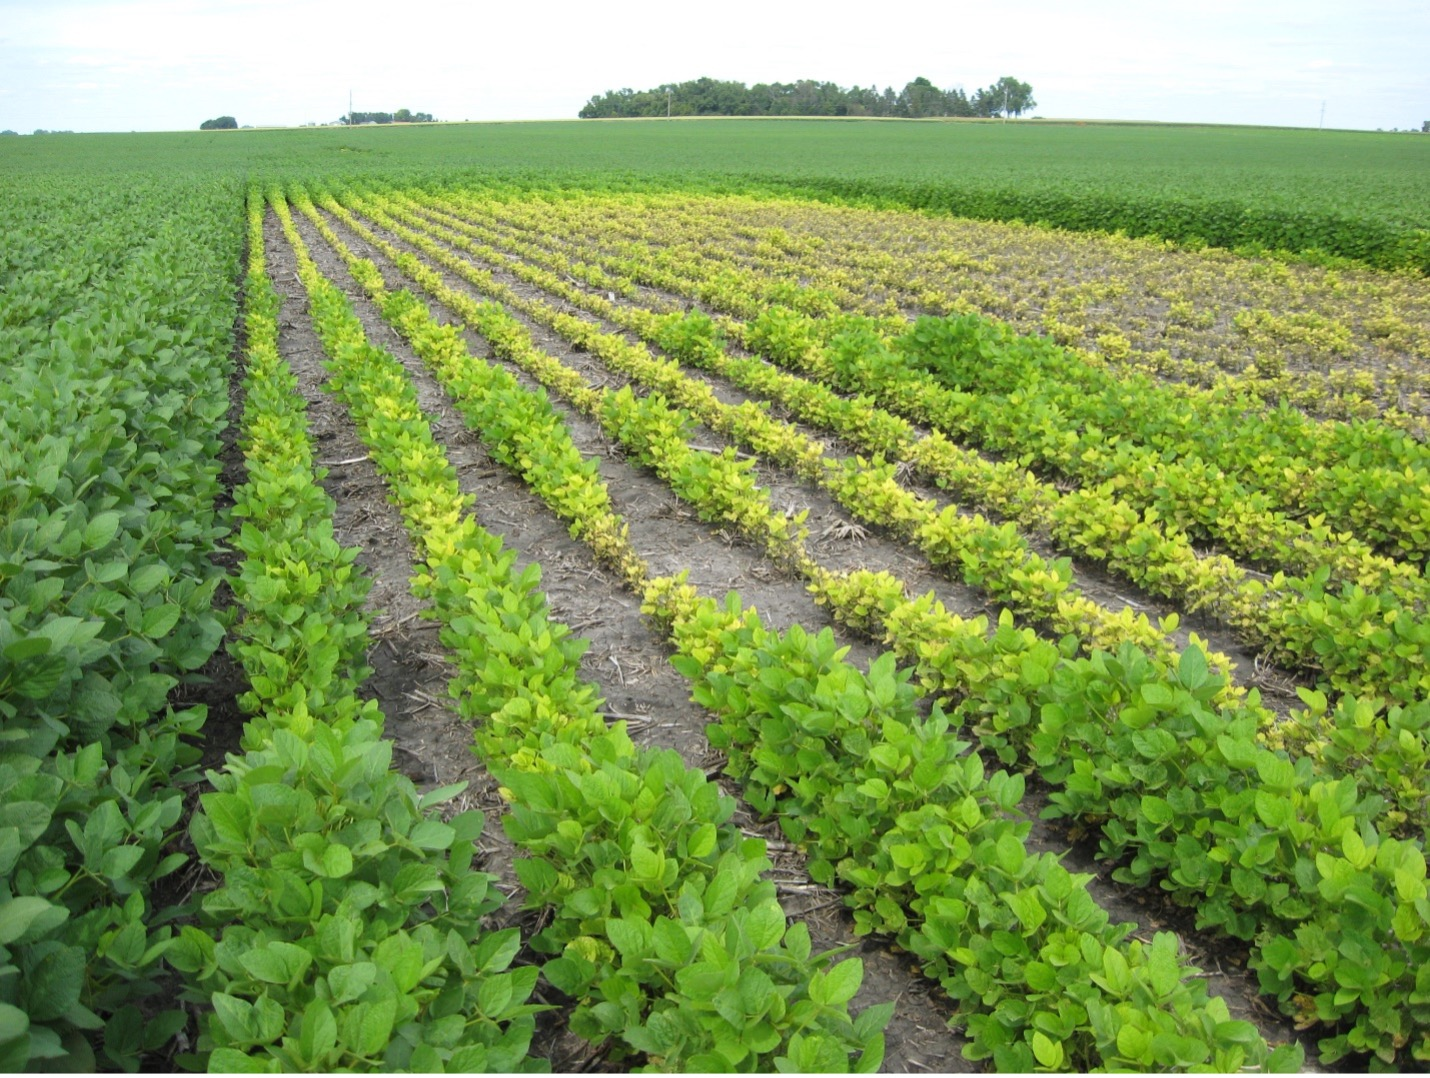 Field with iron chelate treated soybeans on border. Non-treated soybeans in center.